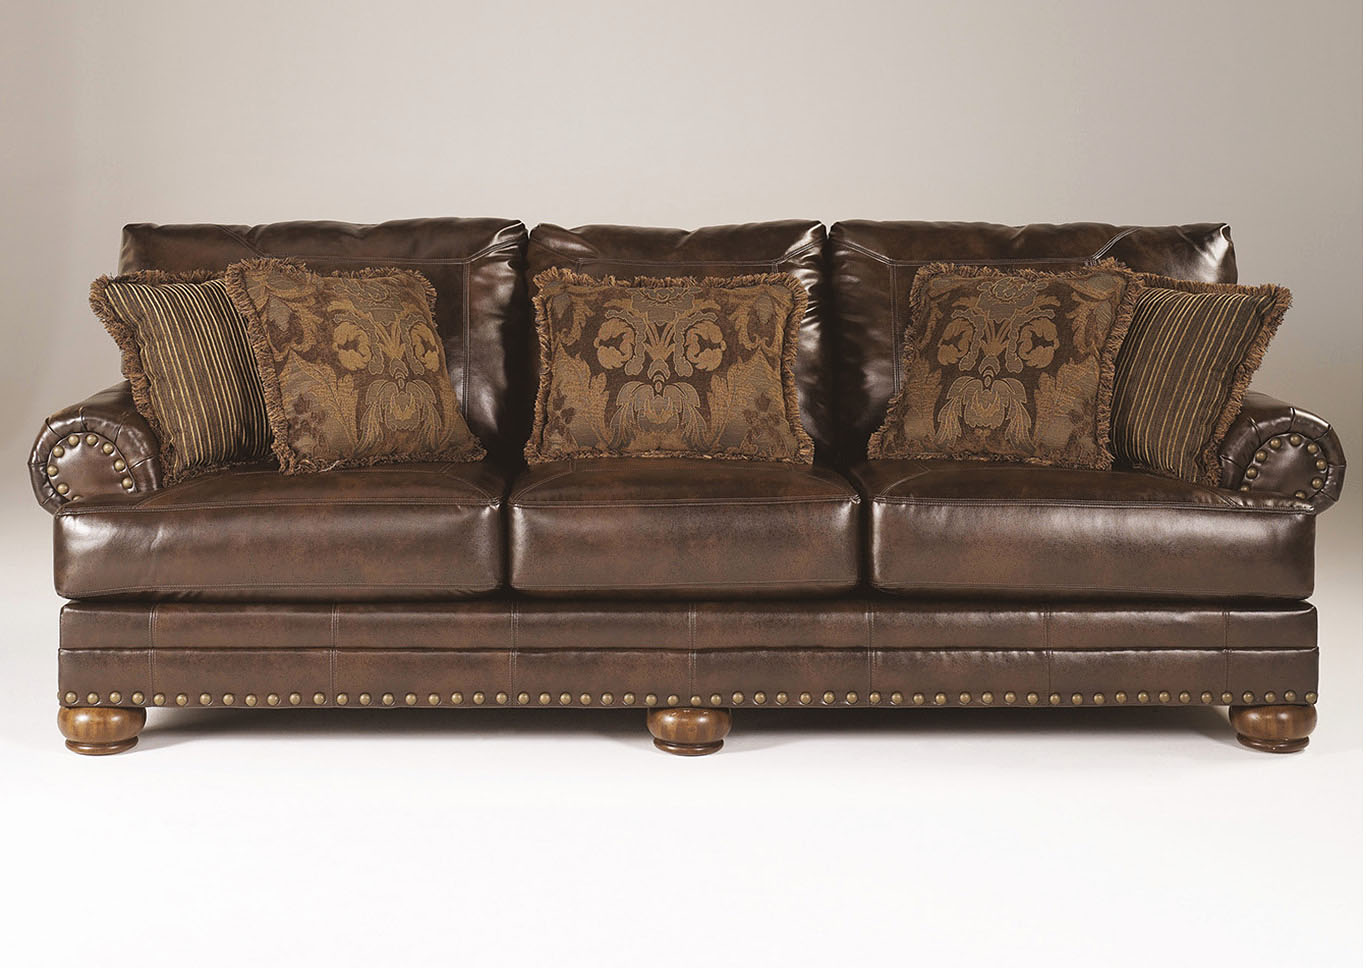 Furniture Palace DuraBlend Antique Sofa